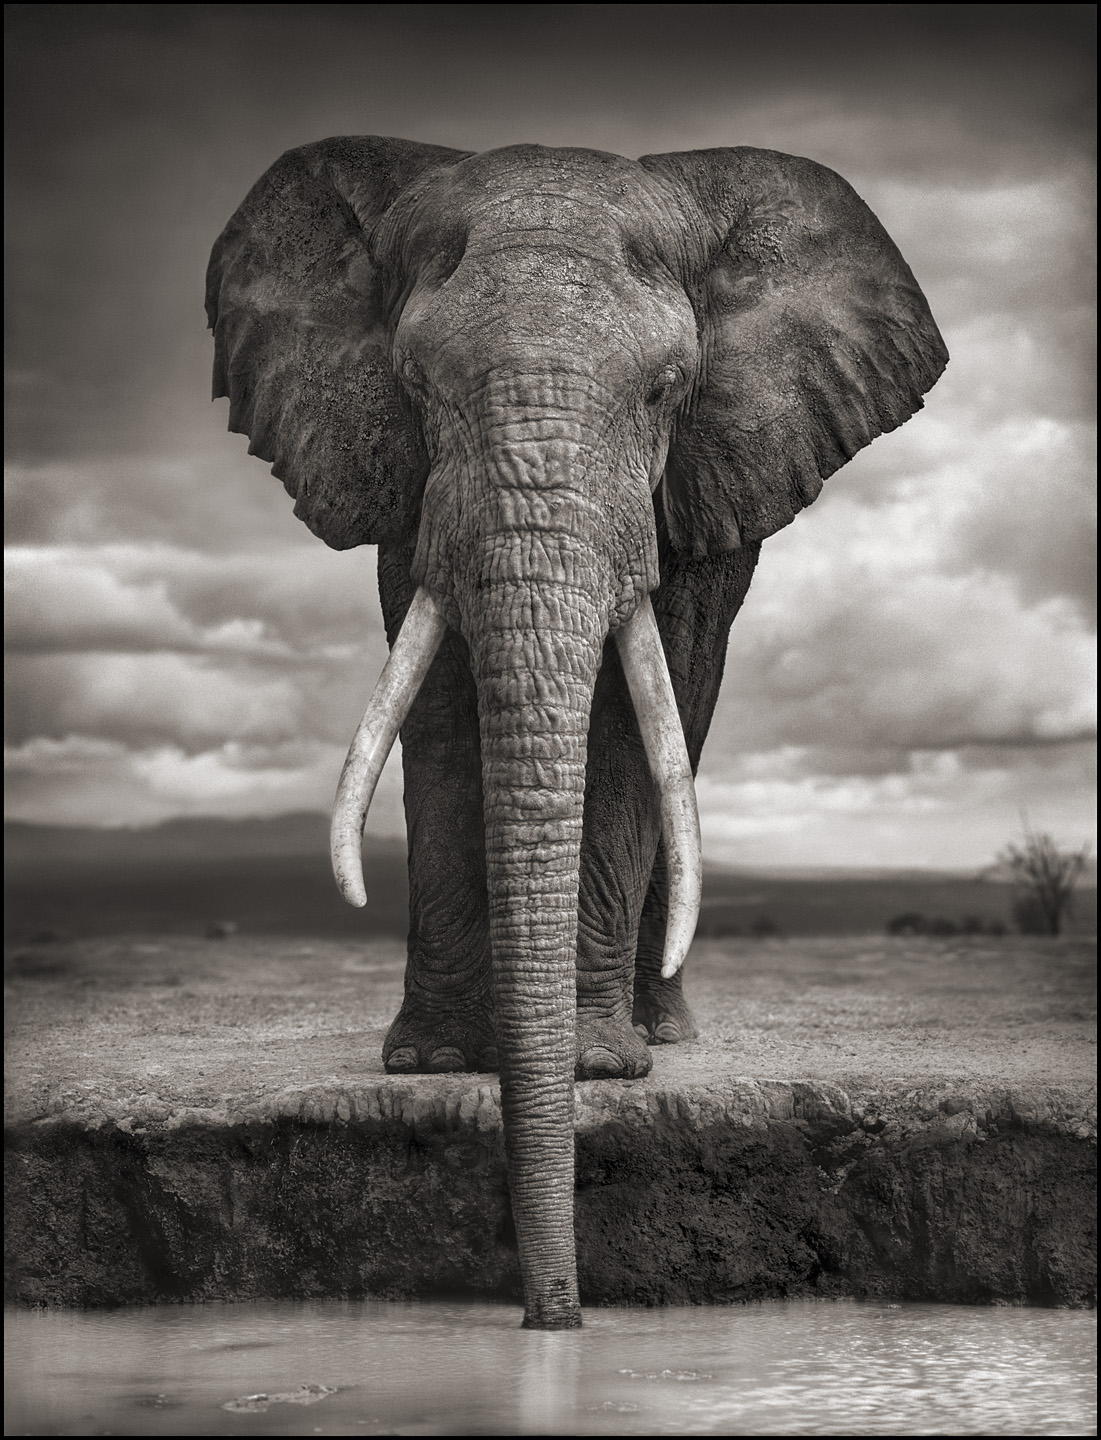 An elephant by water